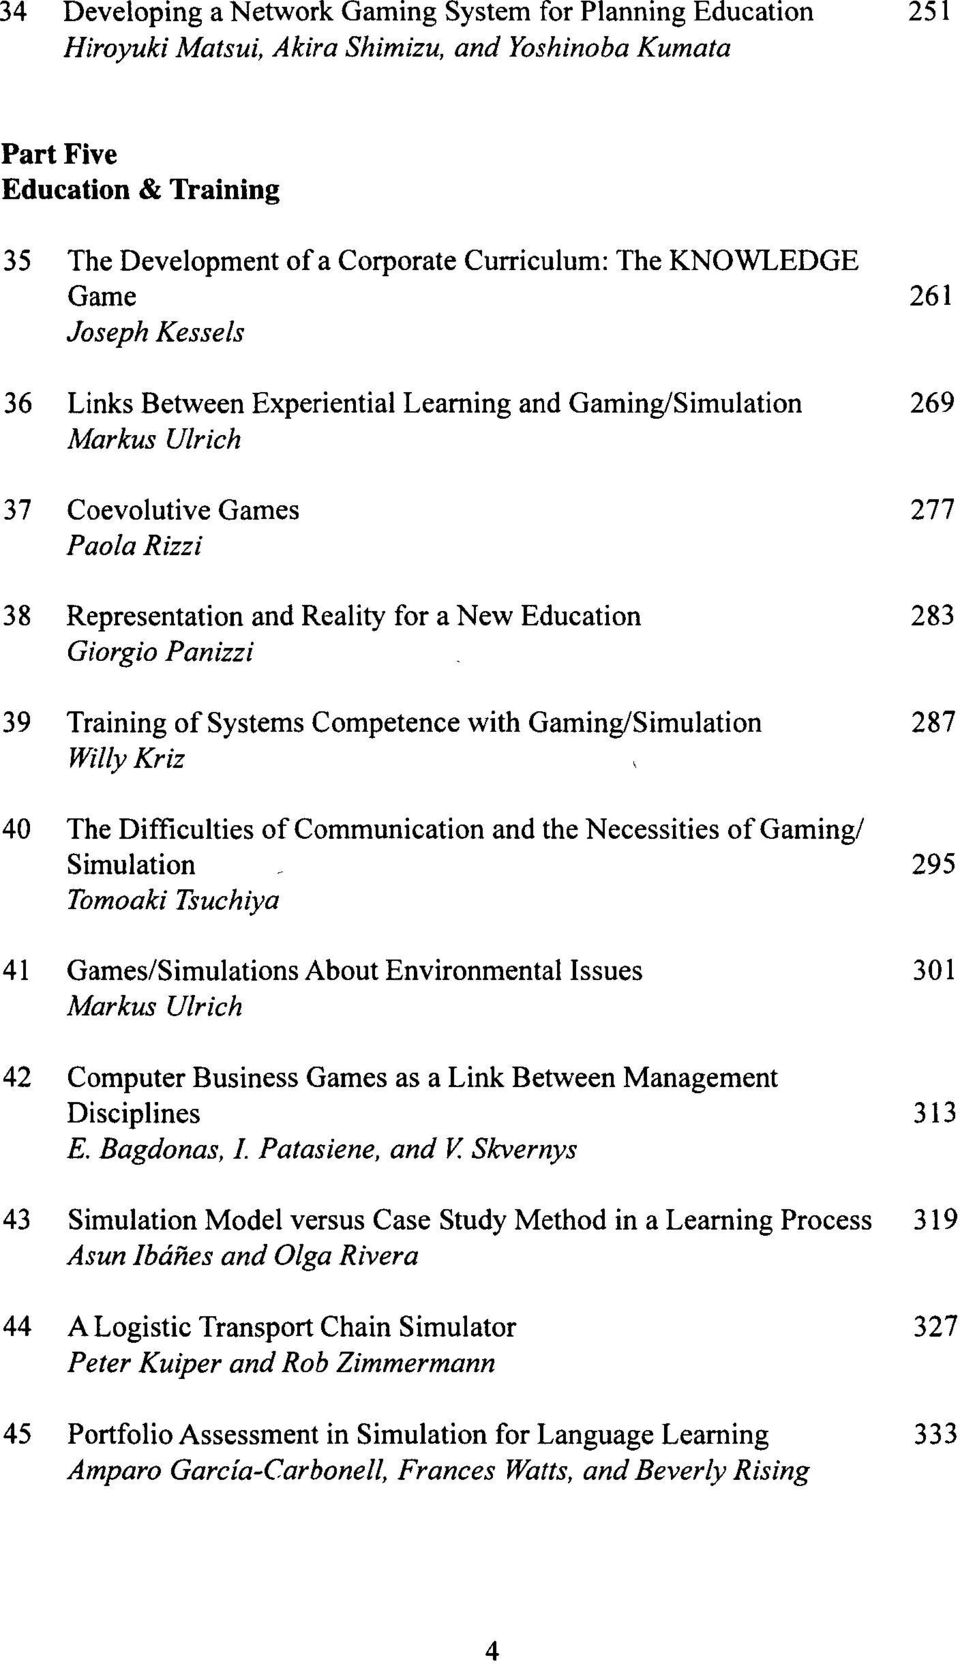 283 Giorgio Panizzi 39 Training of Systems Competence with Gaming/Simulation 287 Willy Kriz 40 The Difficulties of Communication and the Necessities of Gaming/ Simulation, 295 Tomoaki Tsuchiya 41